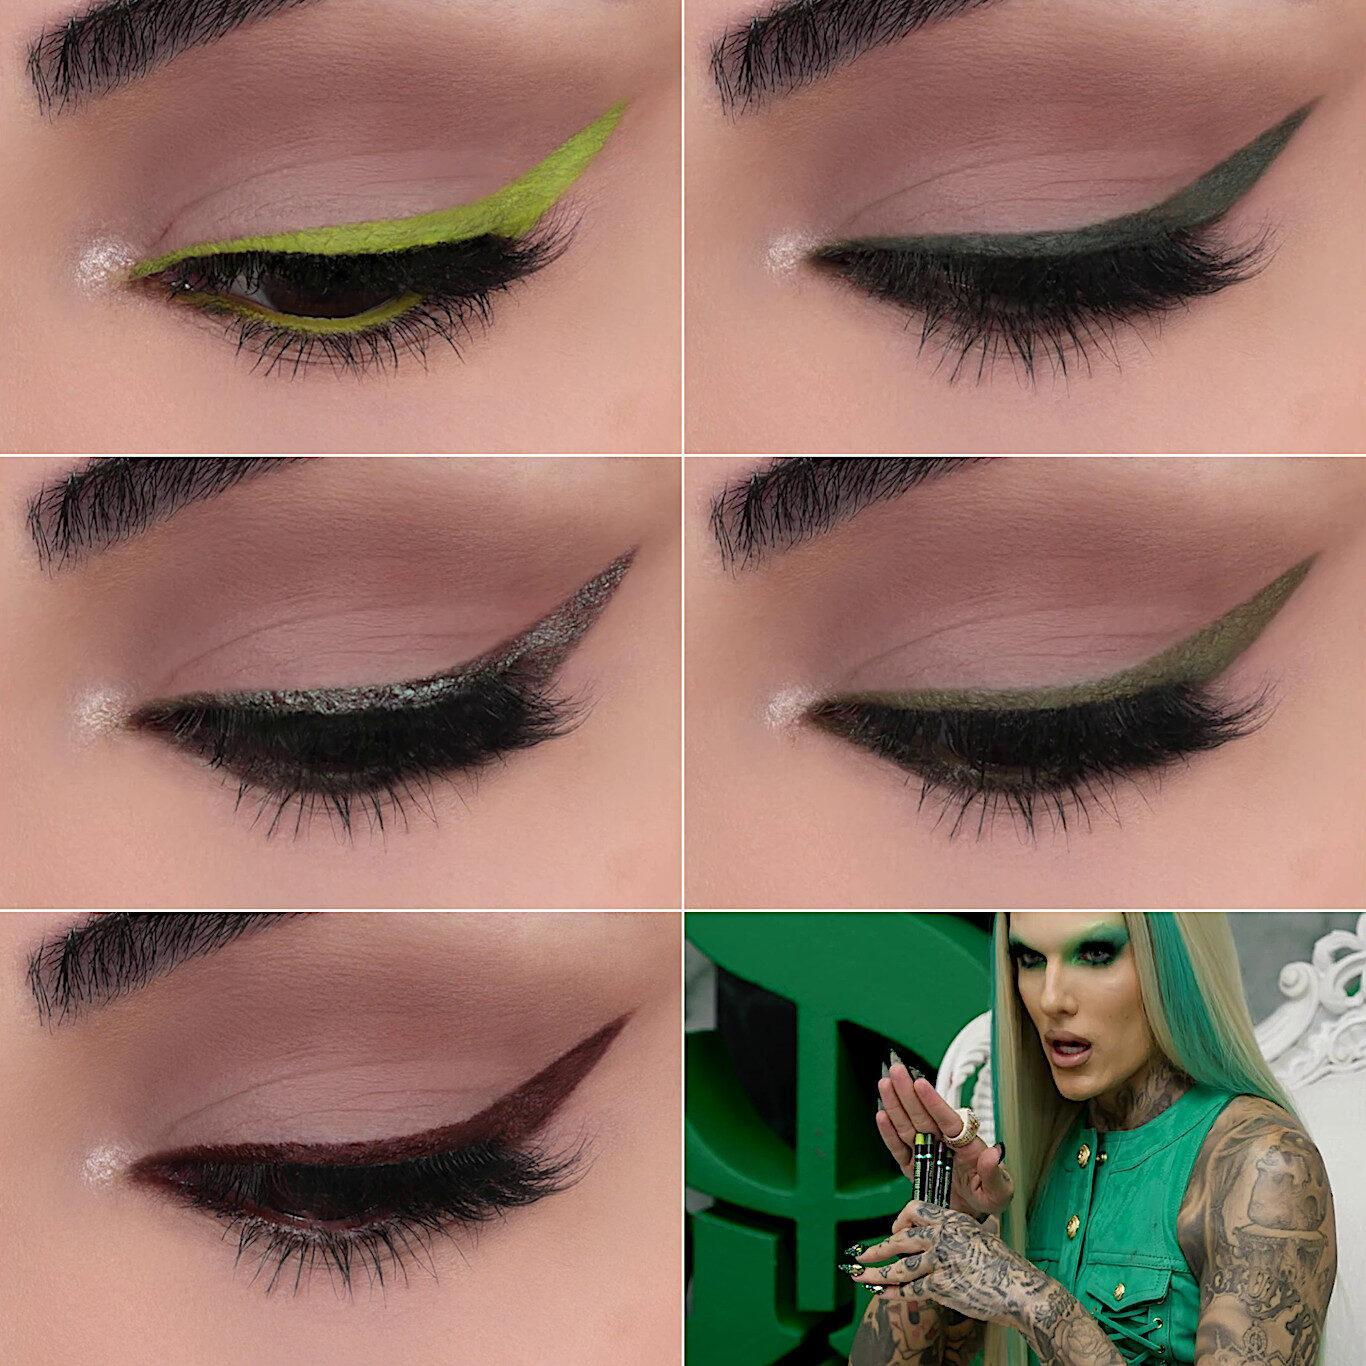 Jeffree Star Cosmetics Blood Money Collection Eyeliners Collage Video